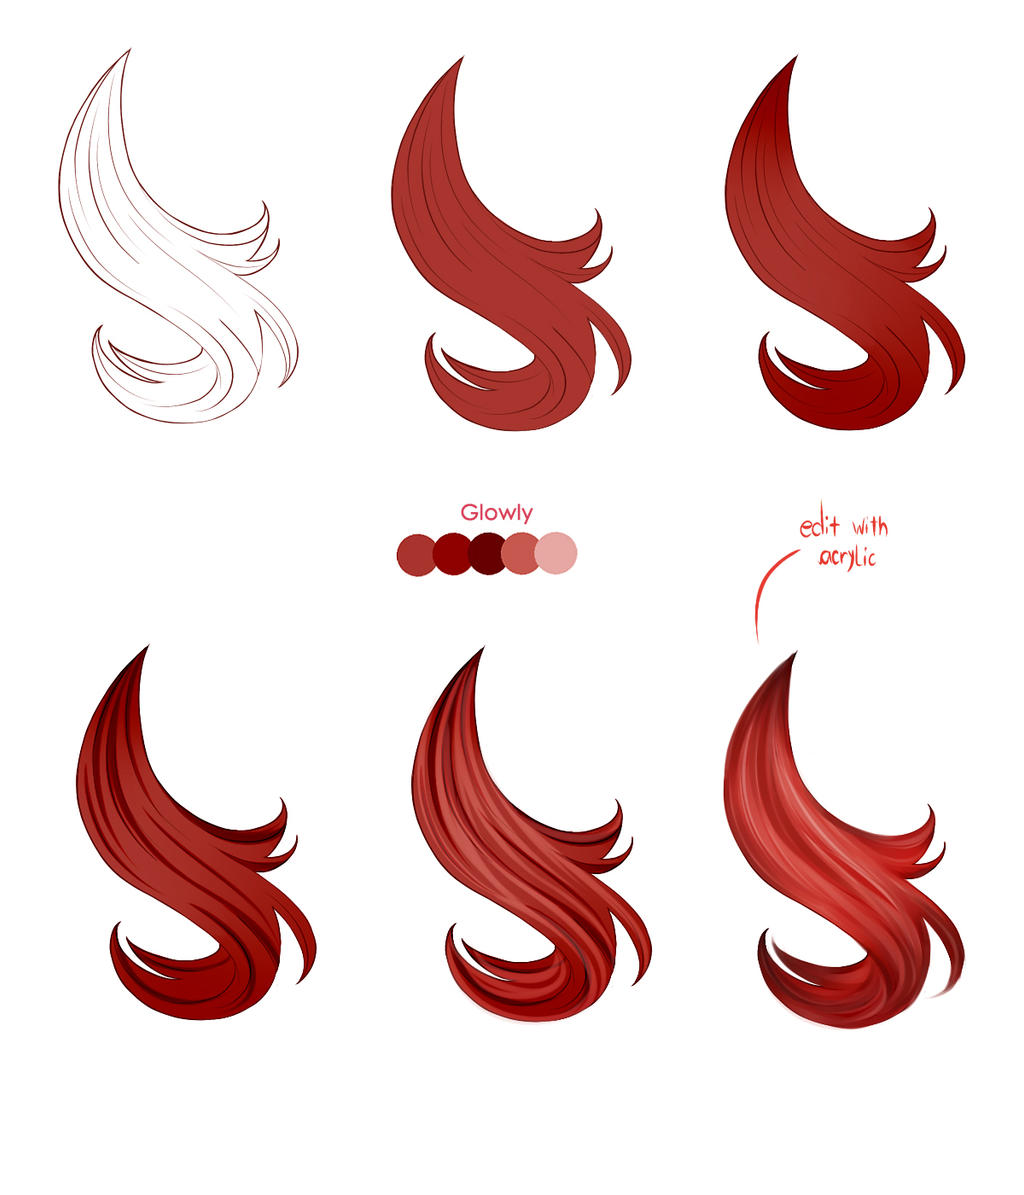 Hair tutorial paint tool sai by pittsdolls on deviantart hair tutorial paint tool sai by pittsdolls ccuart Images